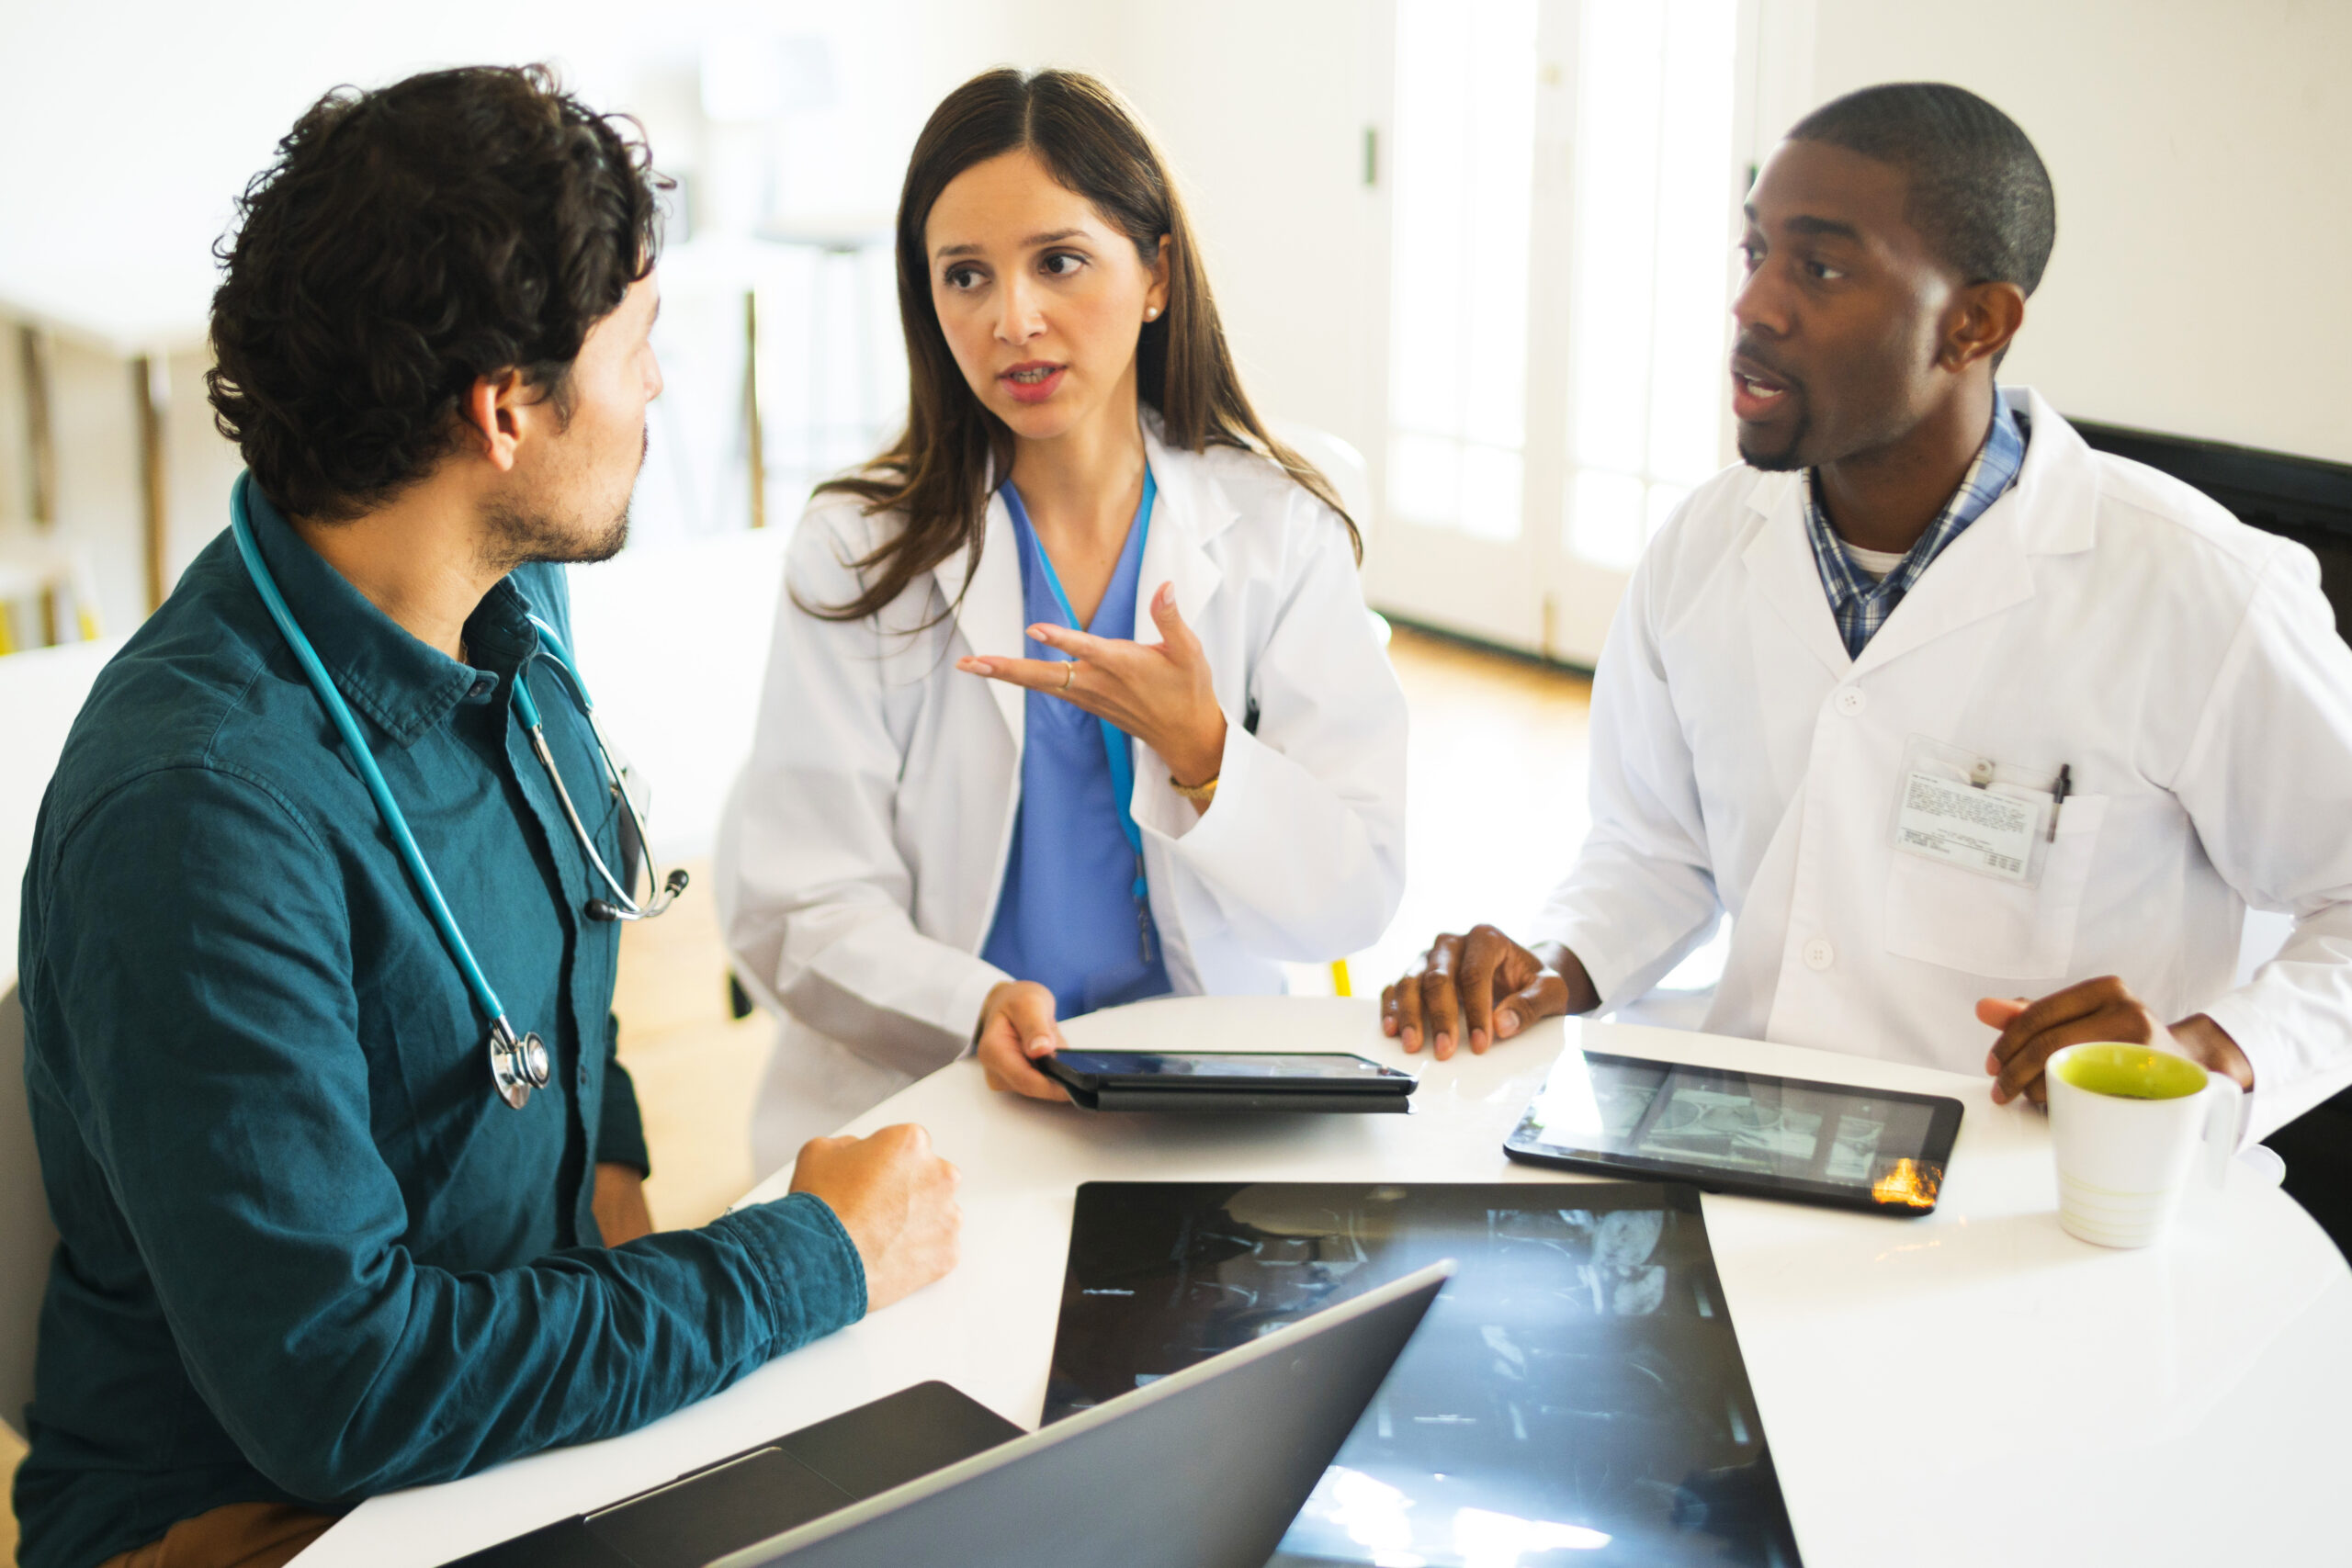 Conflict, Feedback, and Negotiation for Physician Leaders